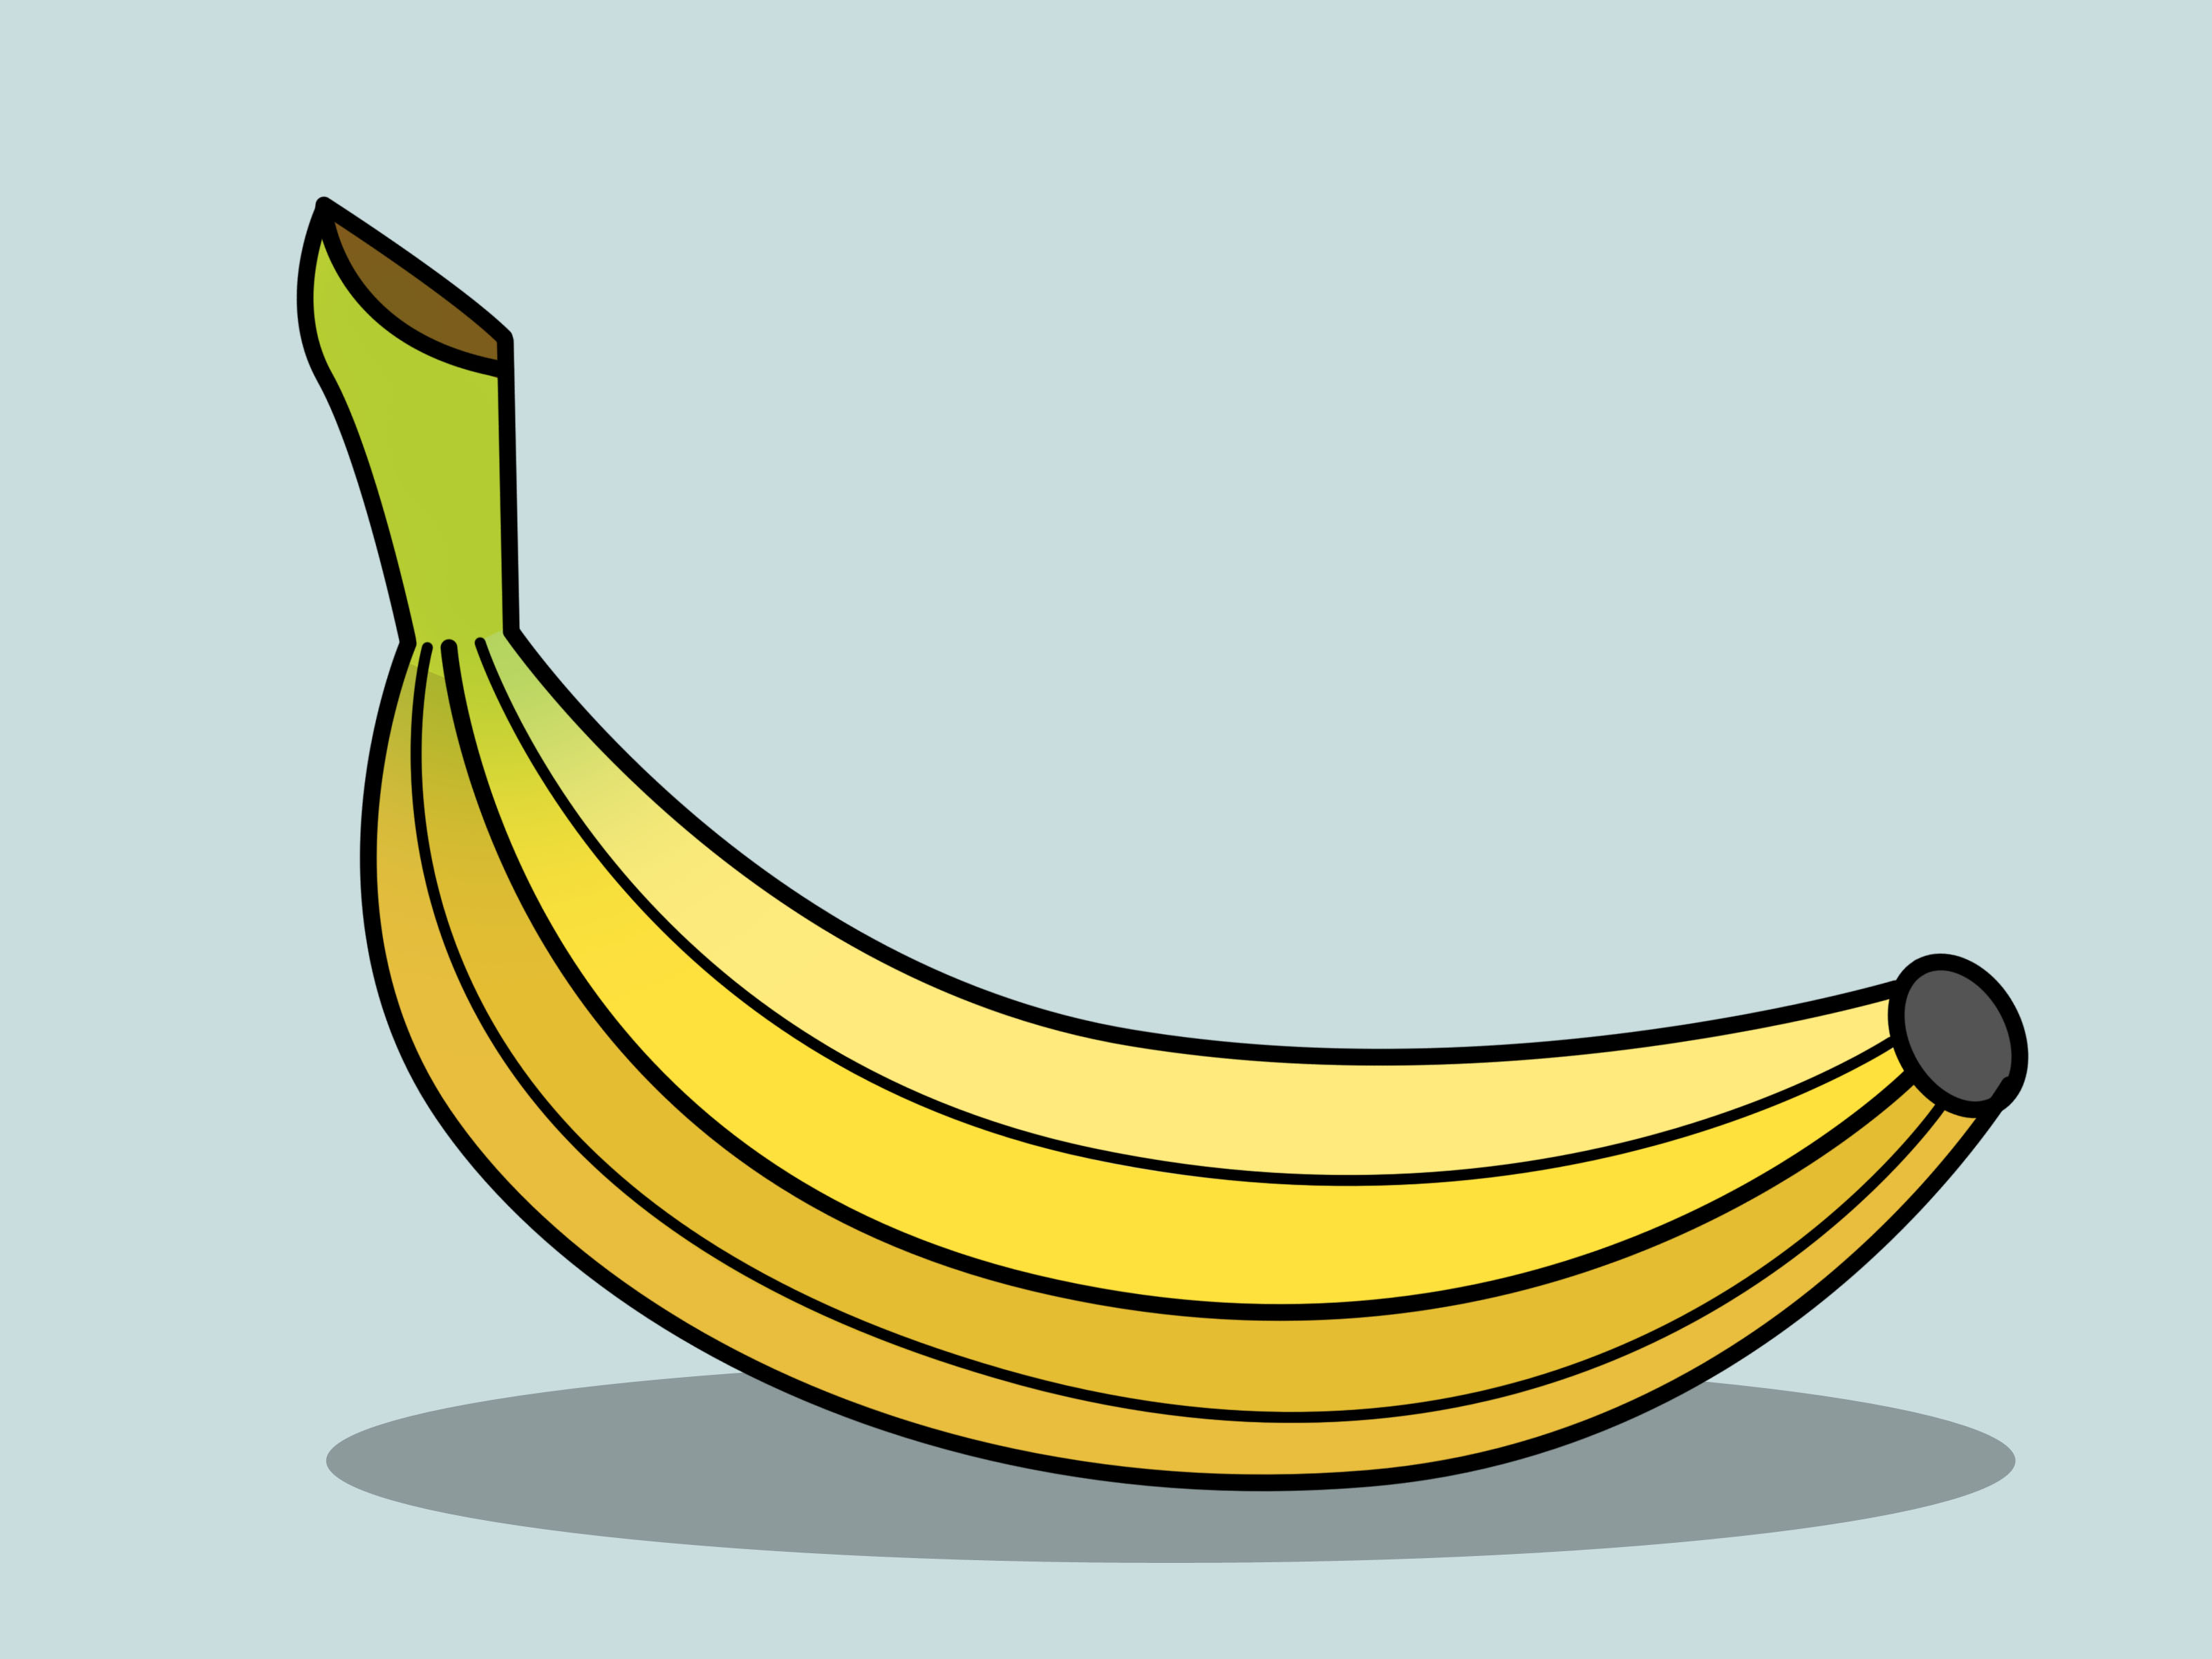 Line Drawing Banana : Banana line drawing clipart best